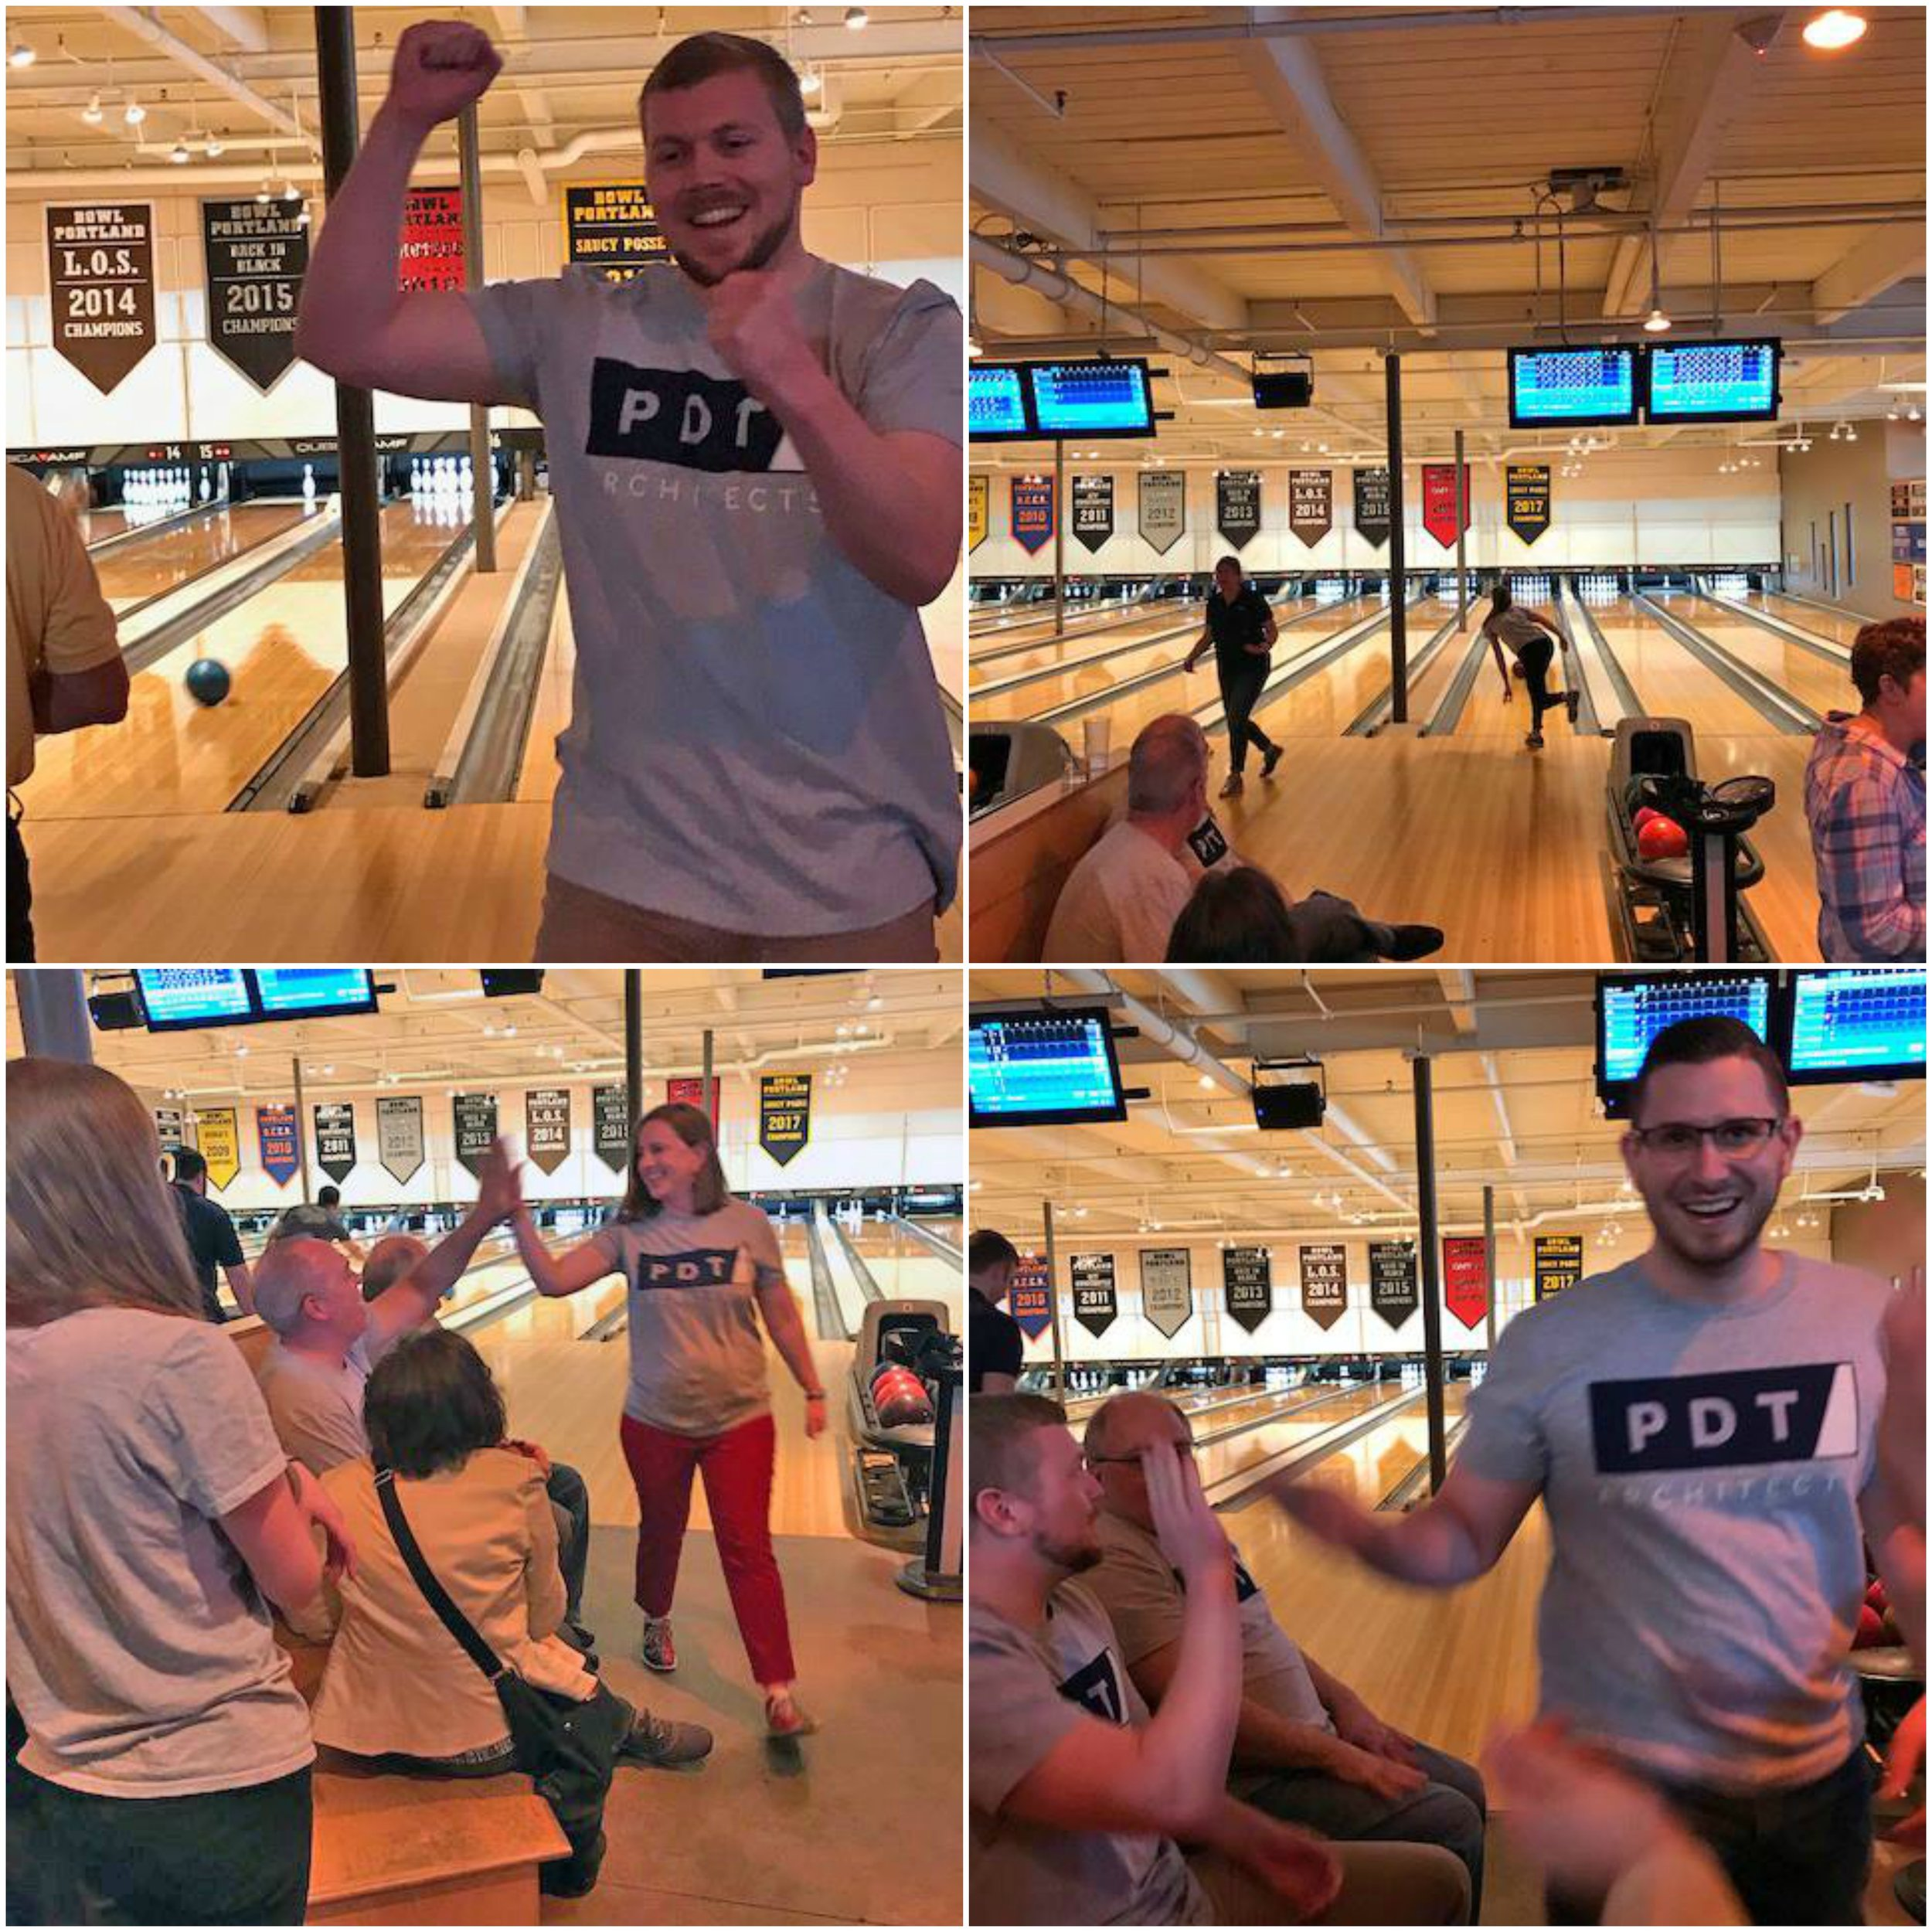 The PDT Pinheads play in the Annual Mereda Bowl-a-thon at Bayside Bowl.